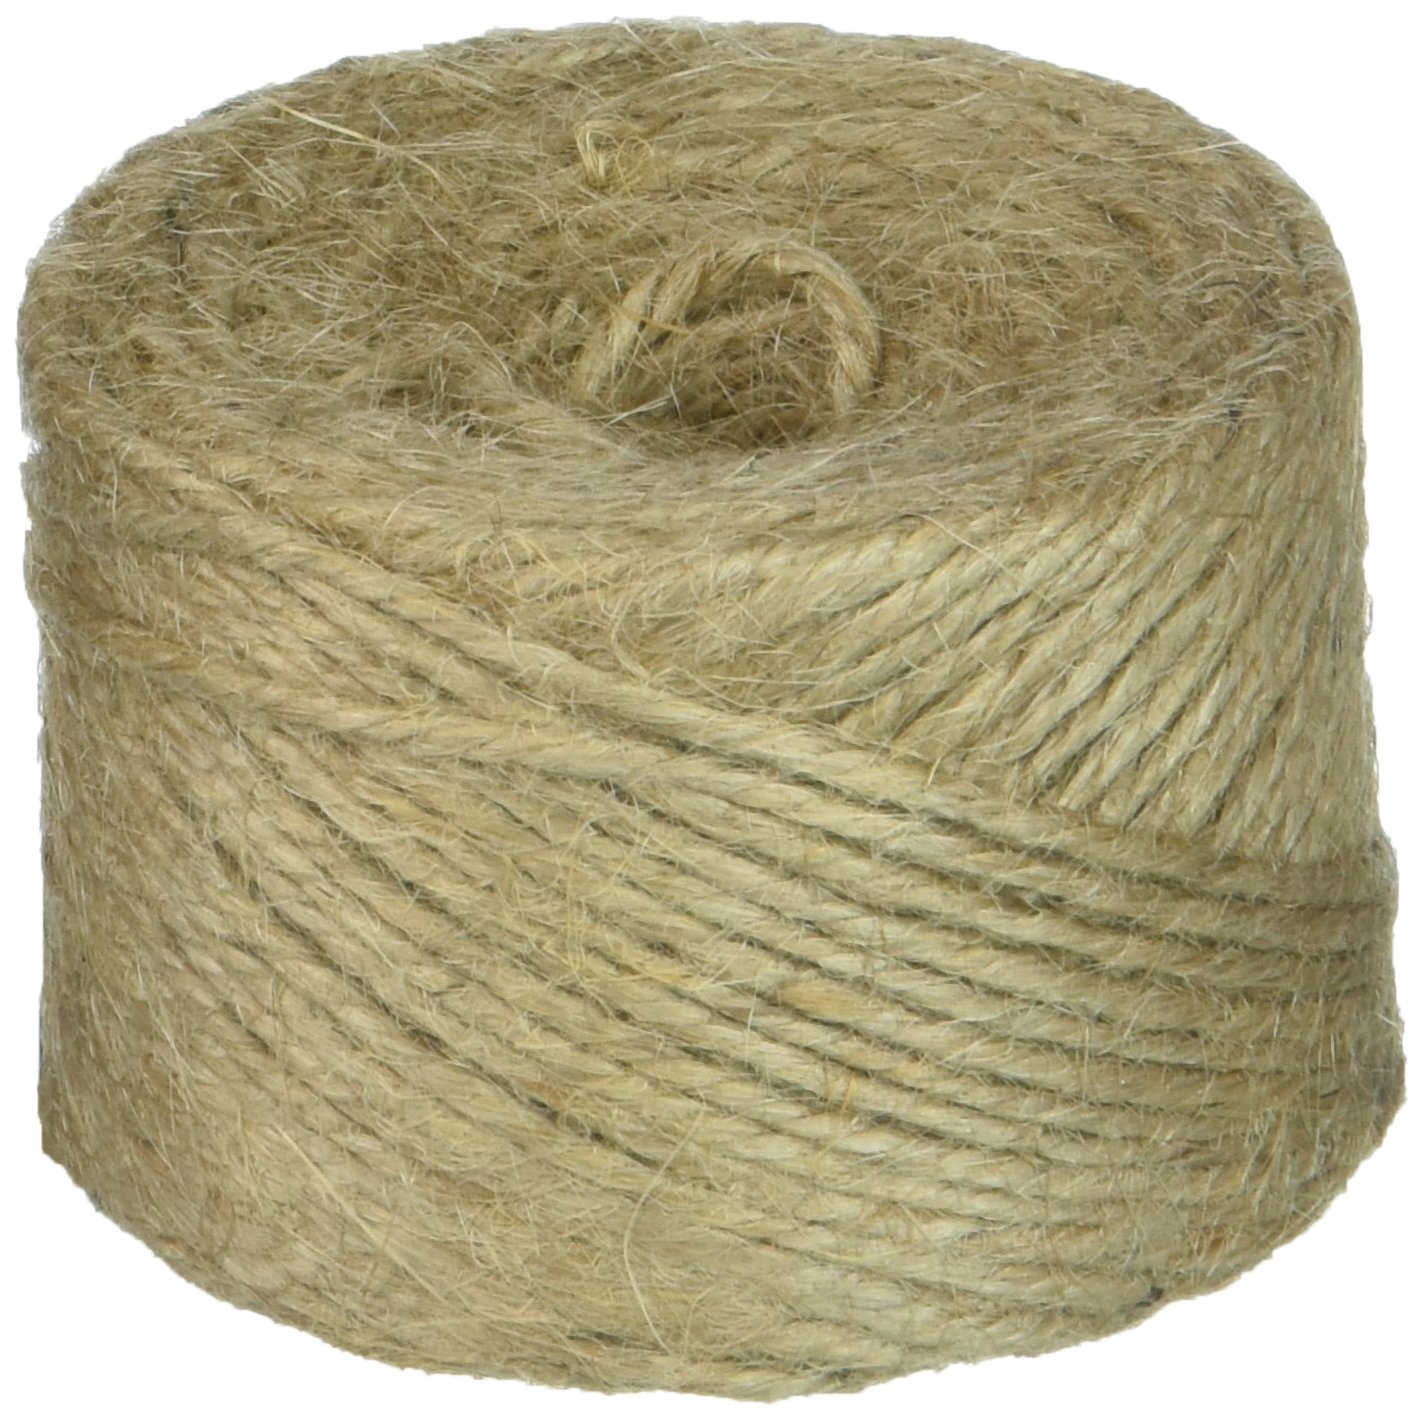 Home Improvement Lehigh Group 6105J Jute Twine Jensen